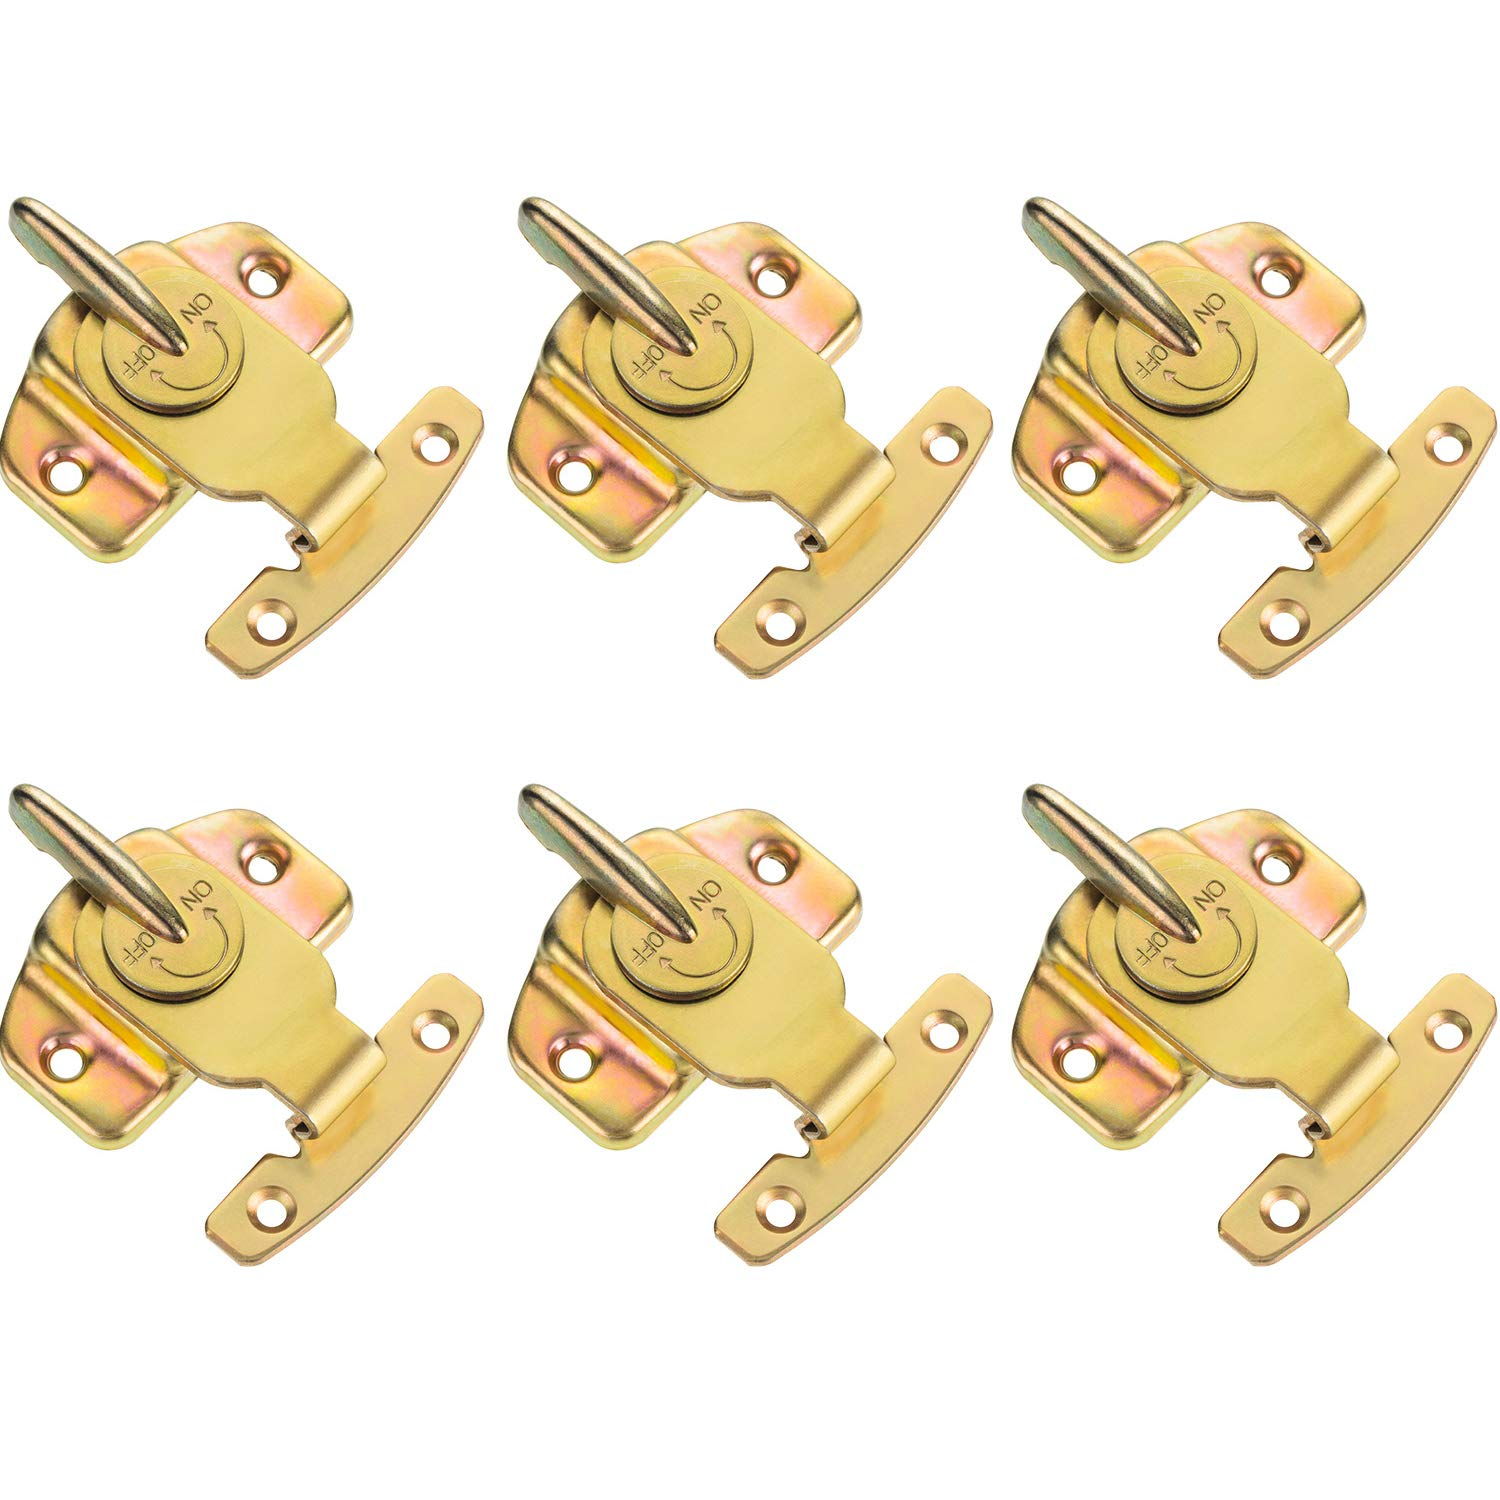 Maxdot 6 Pack Metal Brass Plated Table Locks Dining Training Table Buckles Connectors Hardware Accessories